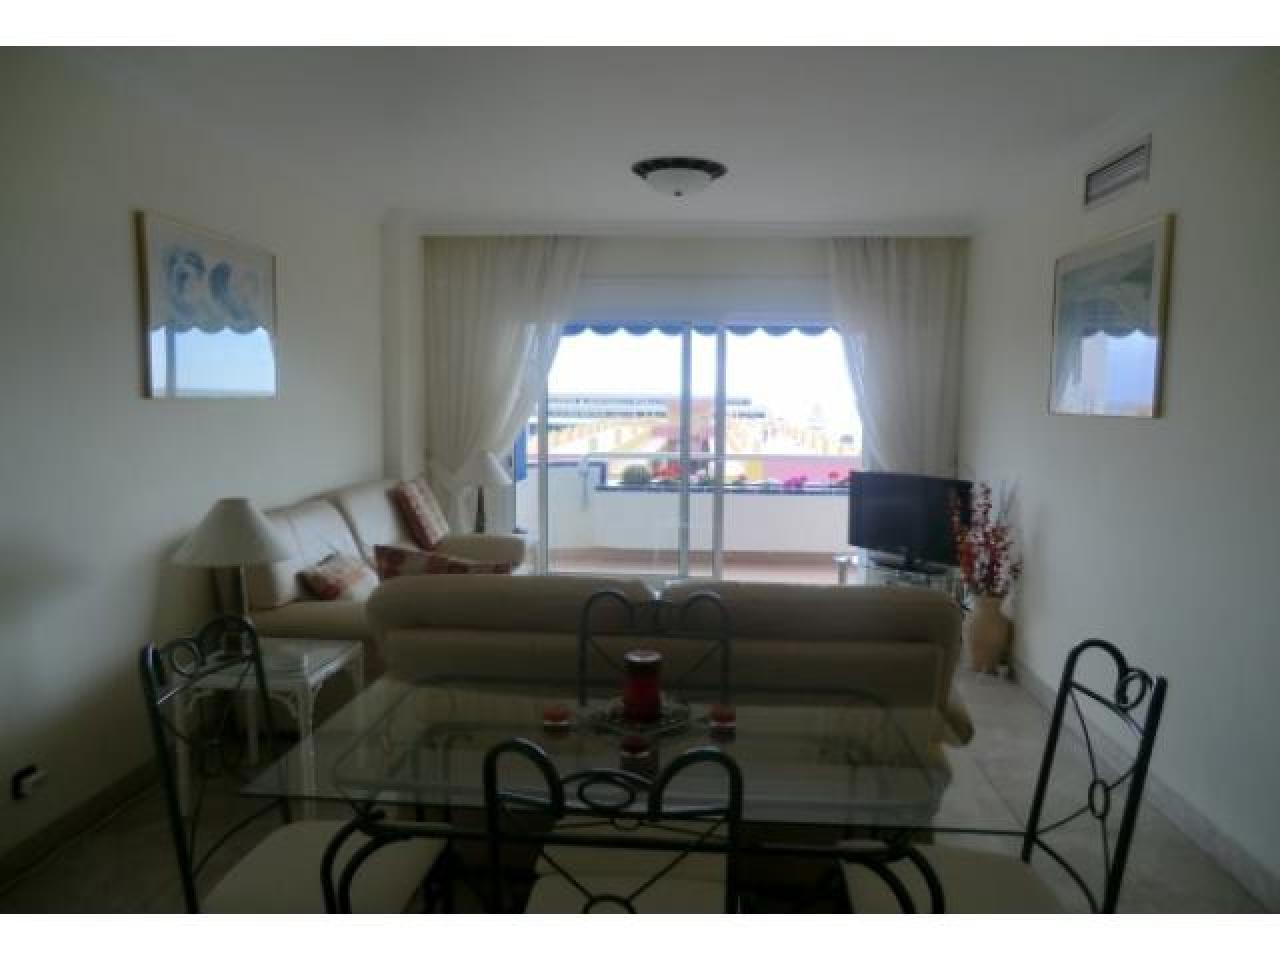 Real estate in Tenerife for sale » #250 - 4